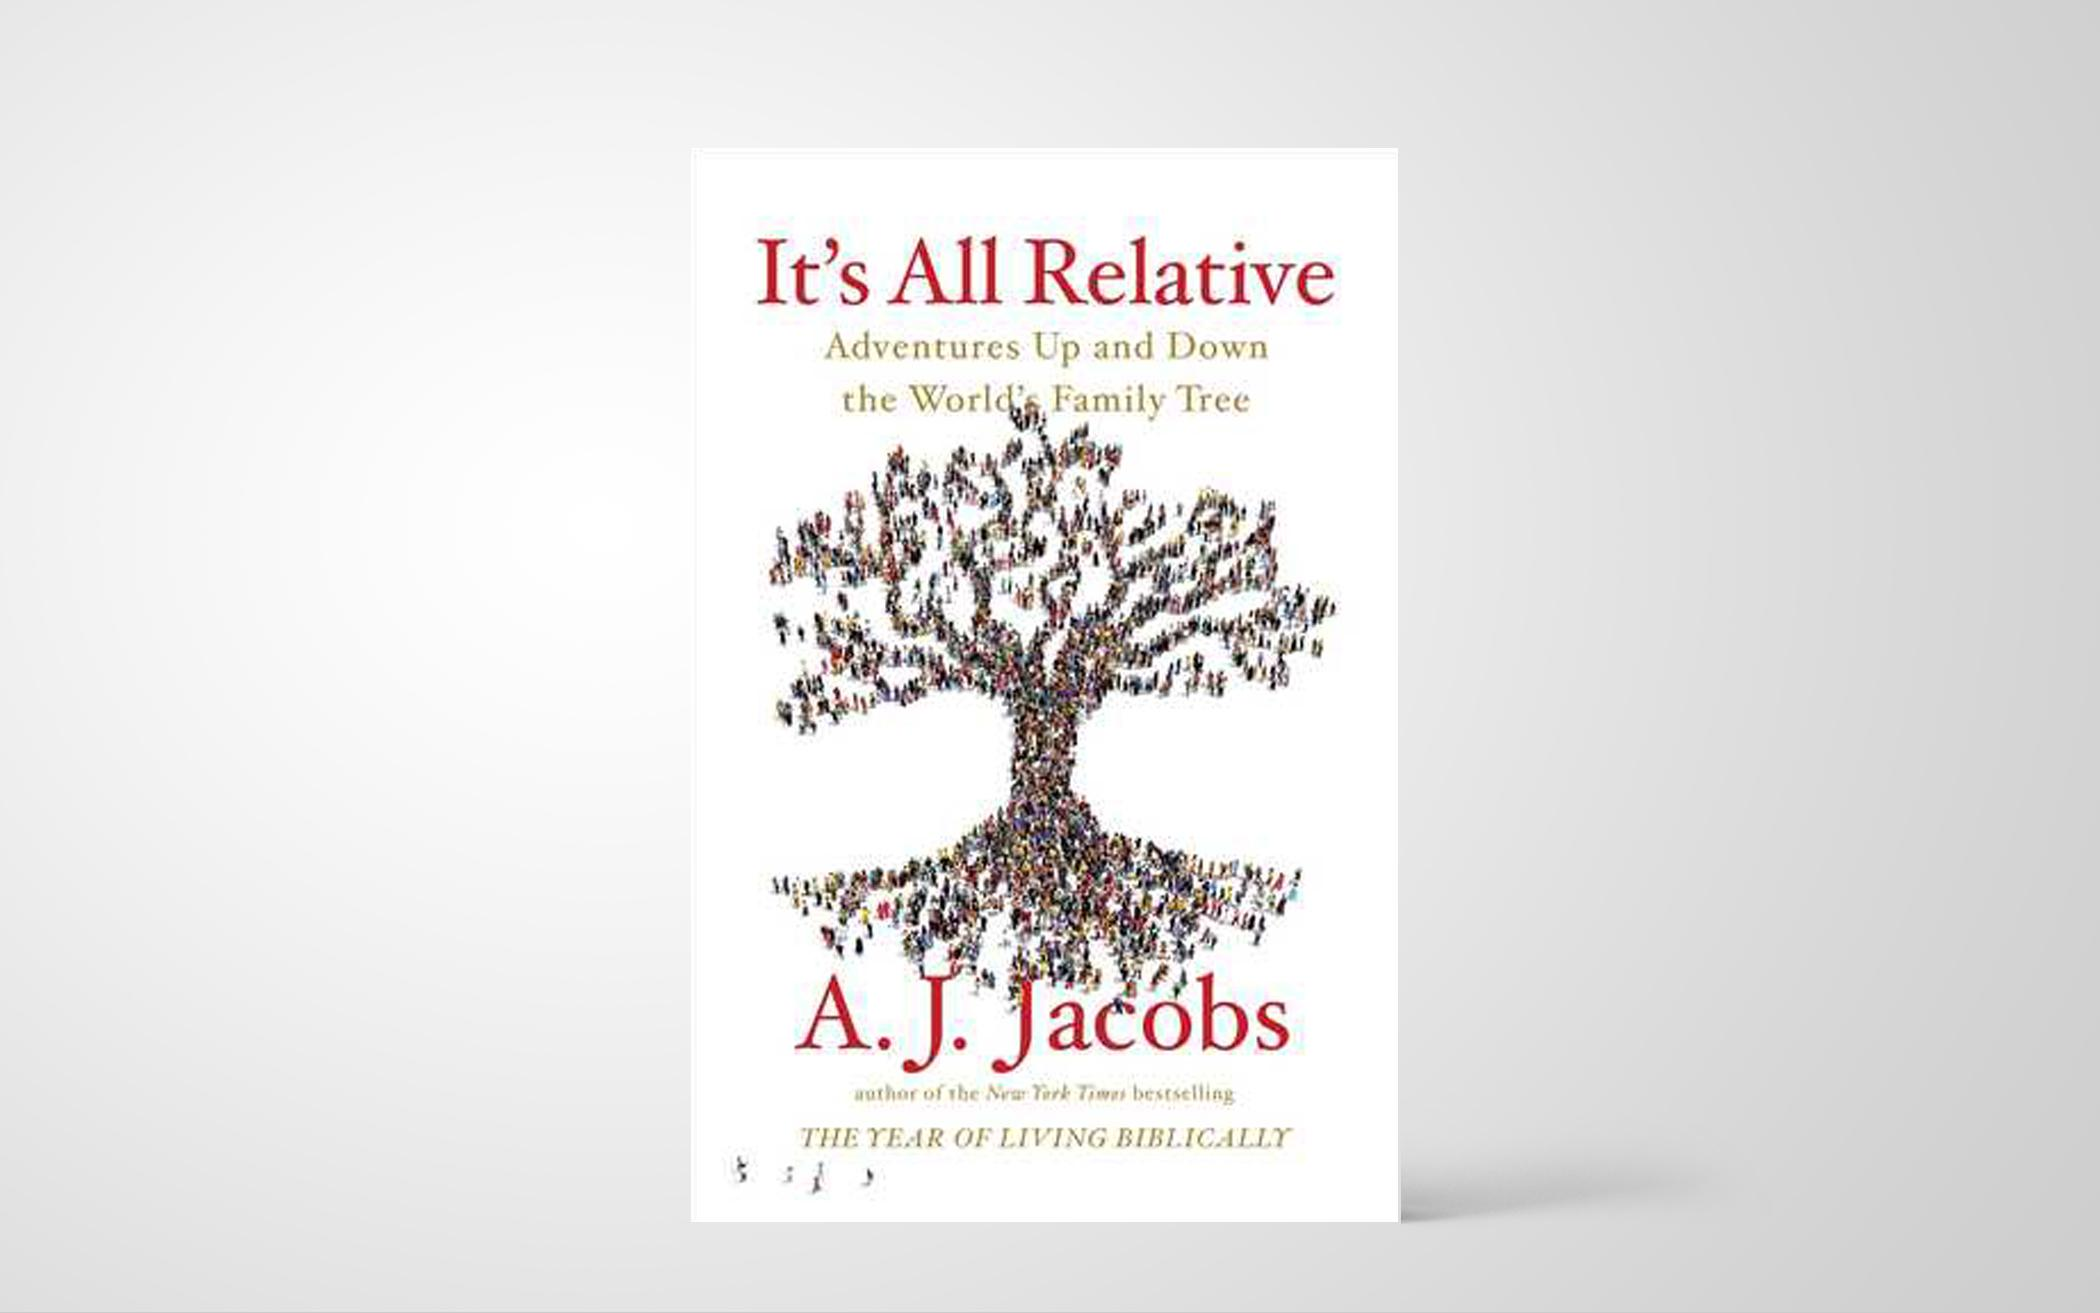 "<p>For most of his life, author A. J. Jacobs ""figured humans were marching slowly but surely along a rational path. I figured we'd eventually shed primitive tribalism and join forces to try to solve the world's big problems. Instead, we"